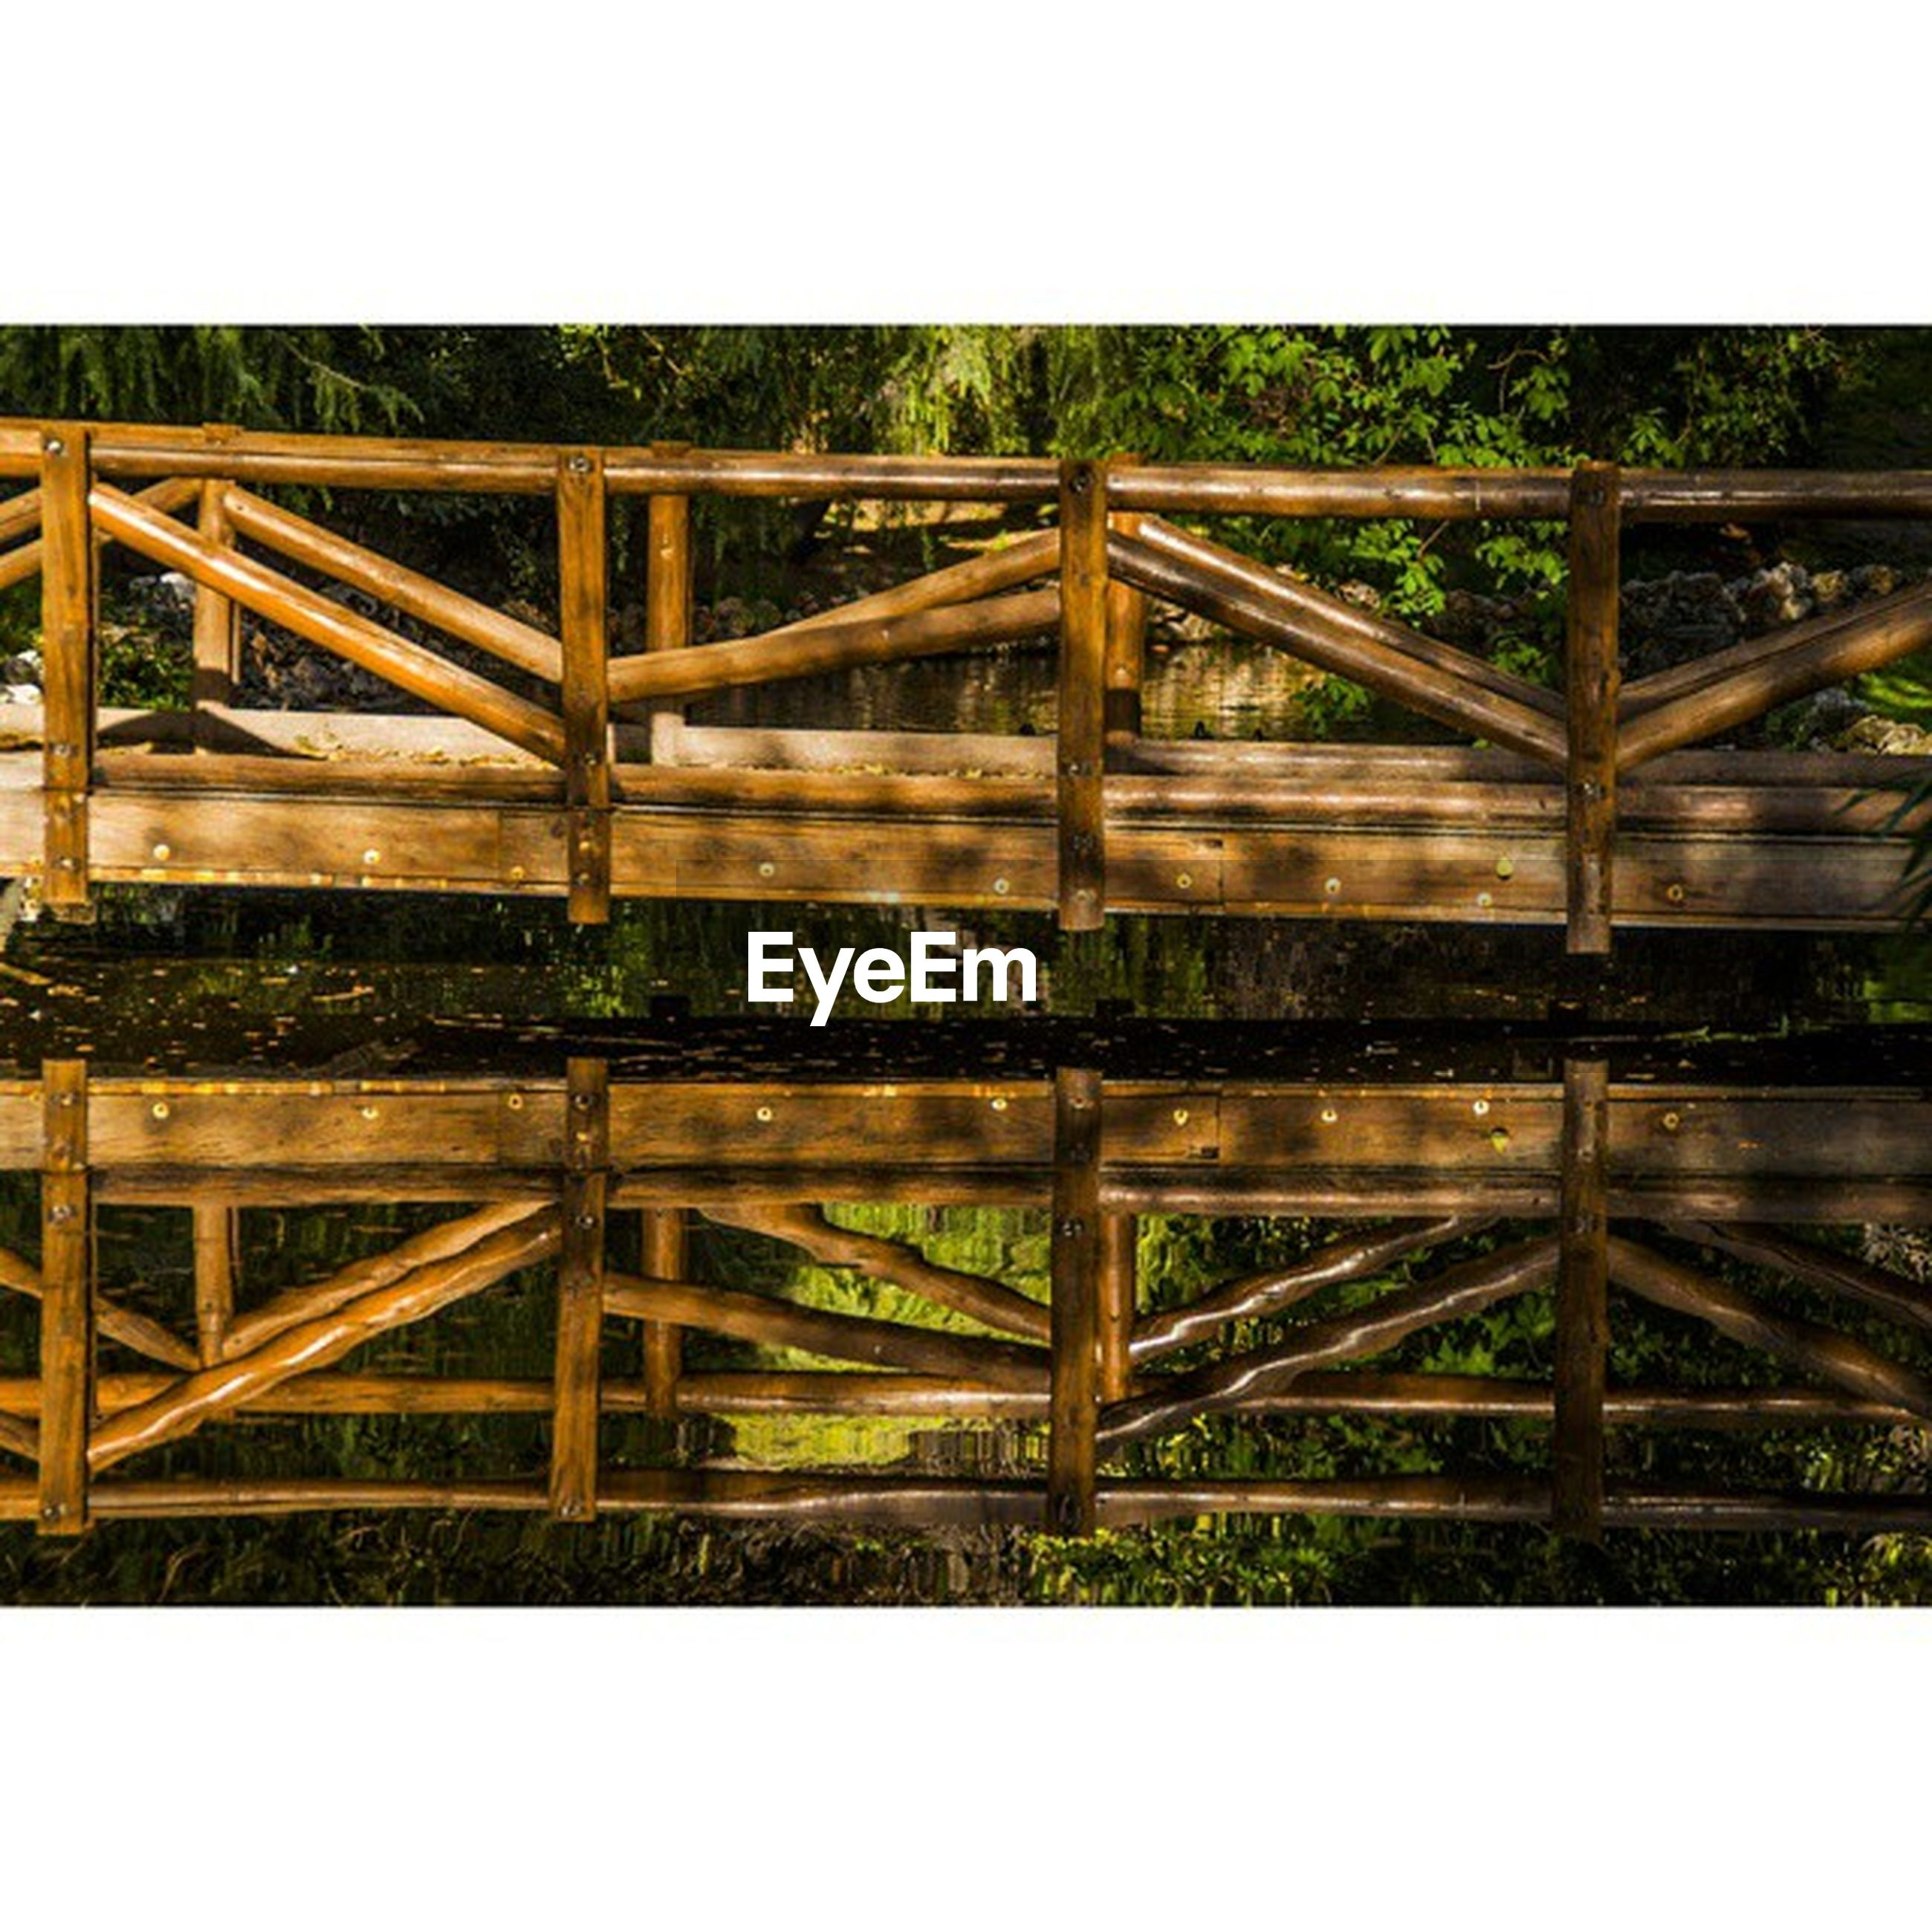 transfer print, auto post production filter, fence, wood - material, railing, wooden, metal, protection, built structure, day, wood, safety, outdoors, growth, sunlight, plant, bridge - man made structure, no people, security, nature